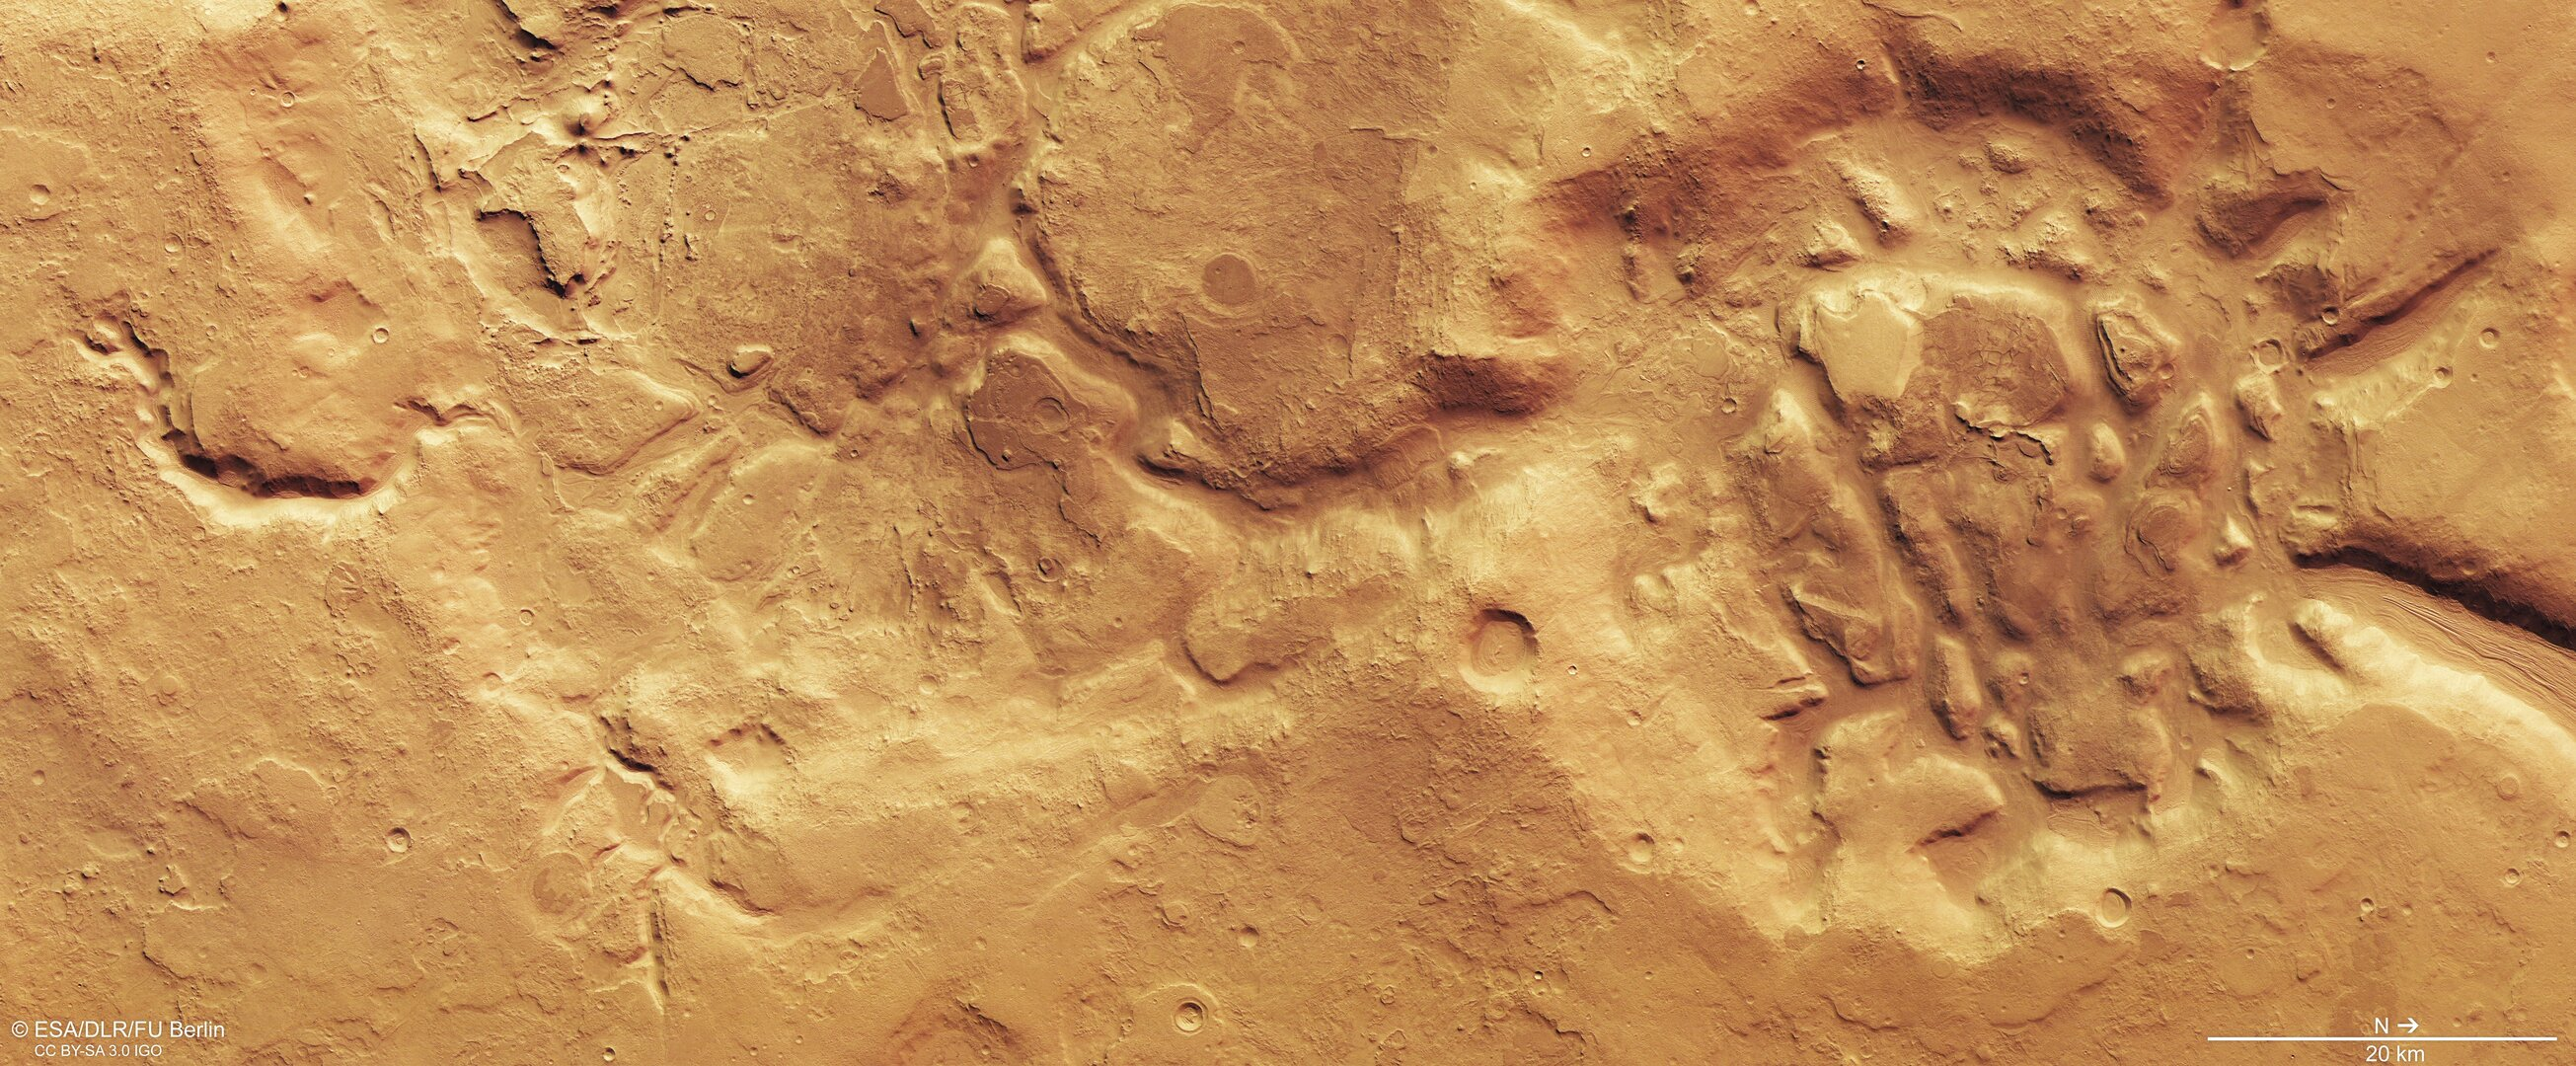 Fragmented terrain on Mars